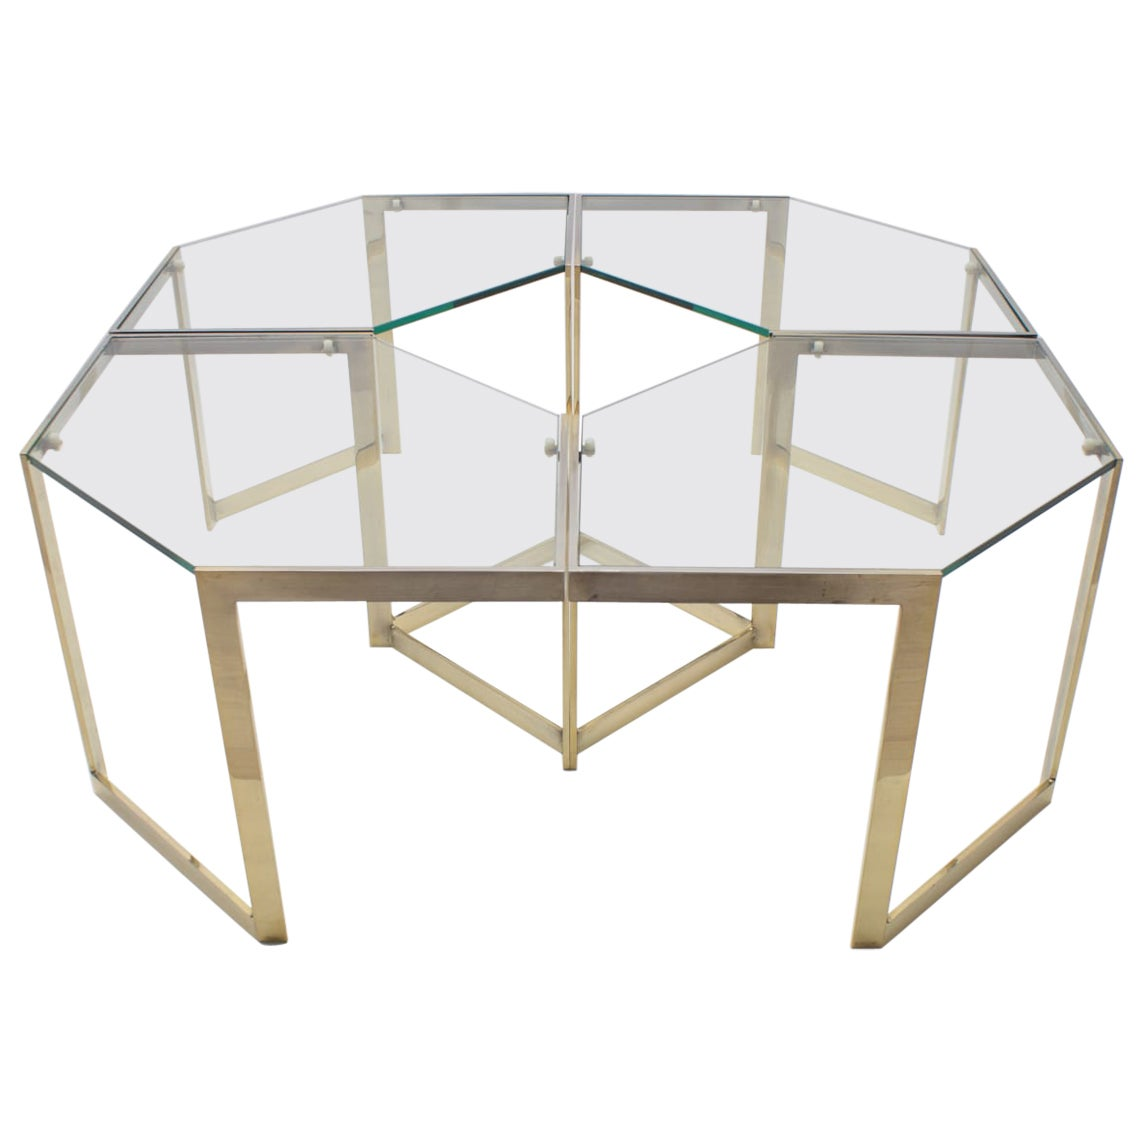 Lovely Set of 4 Brass Modular Side Tables, France, 1960s